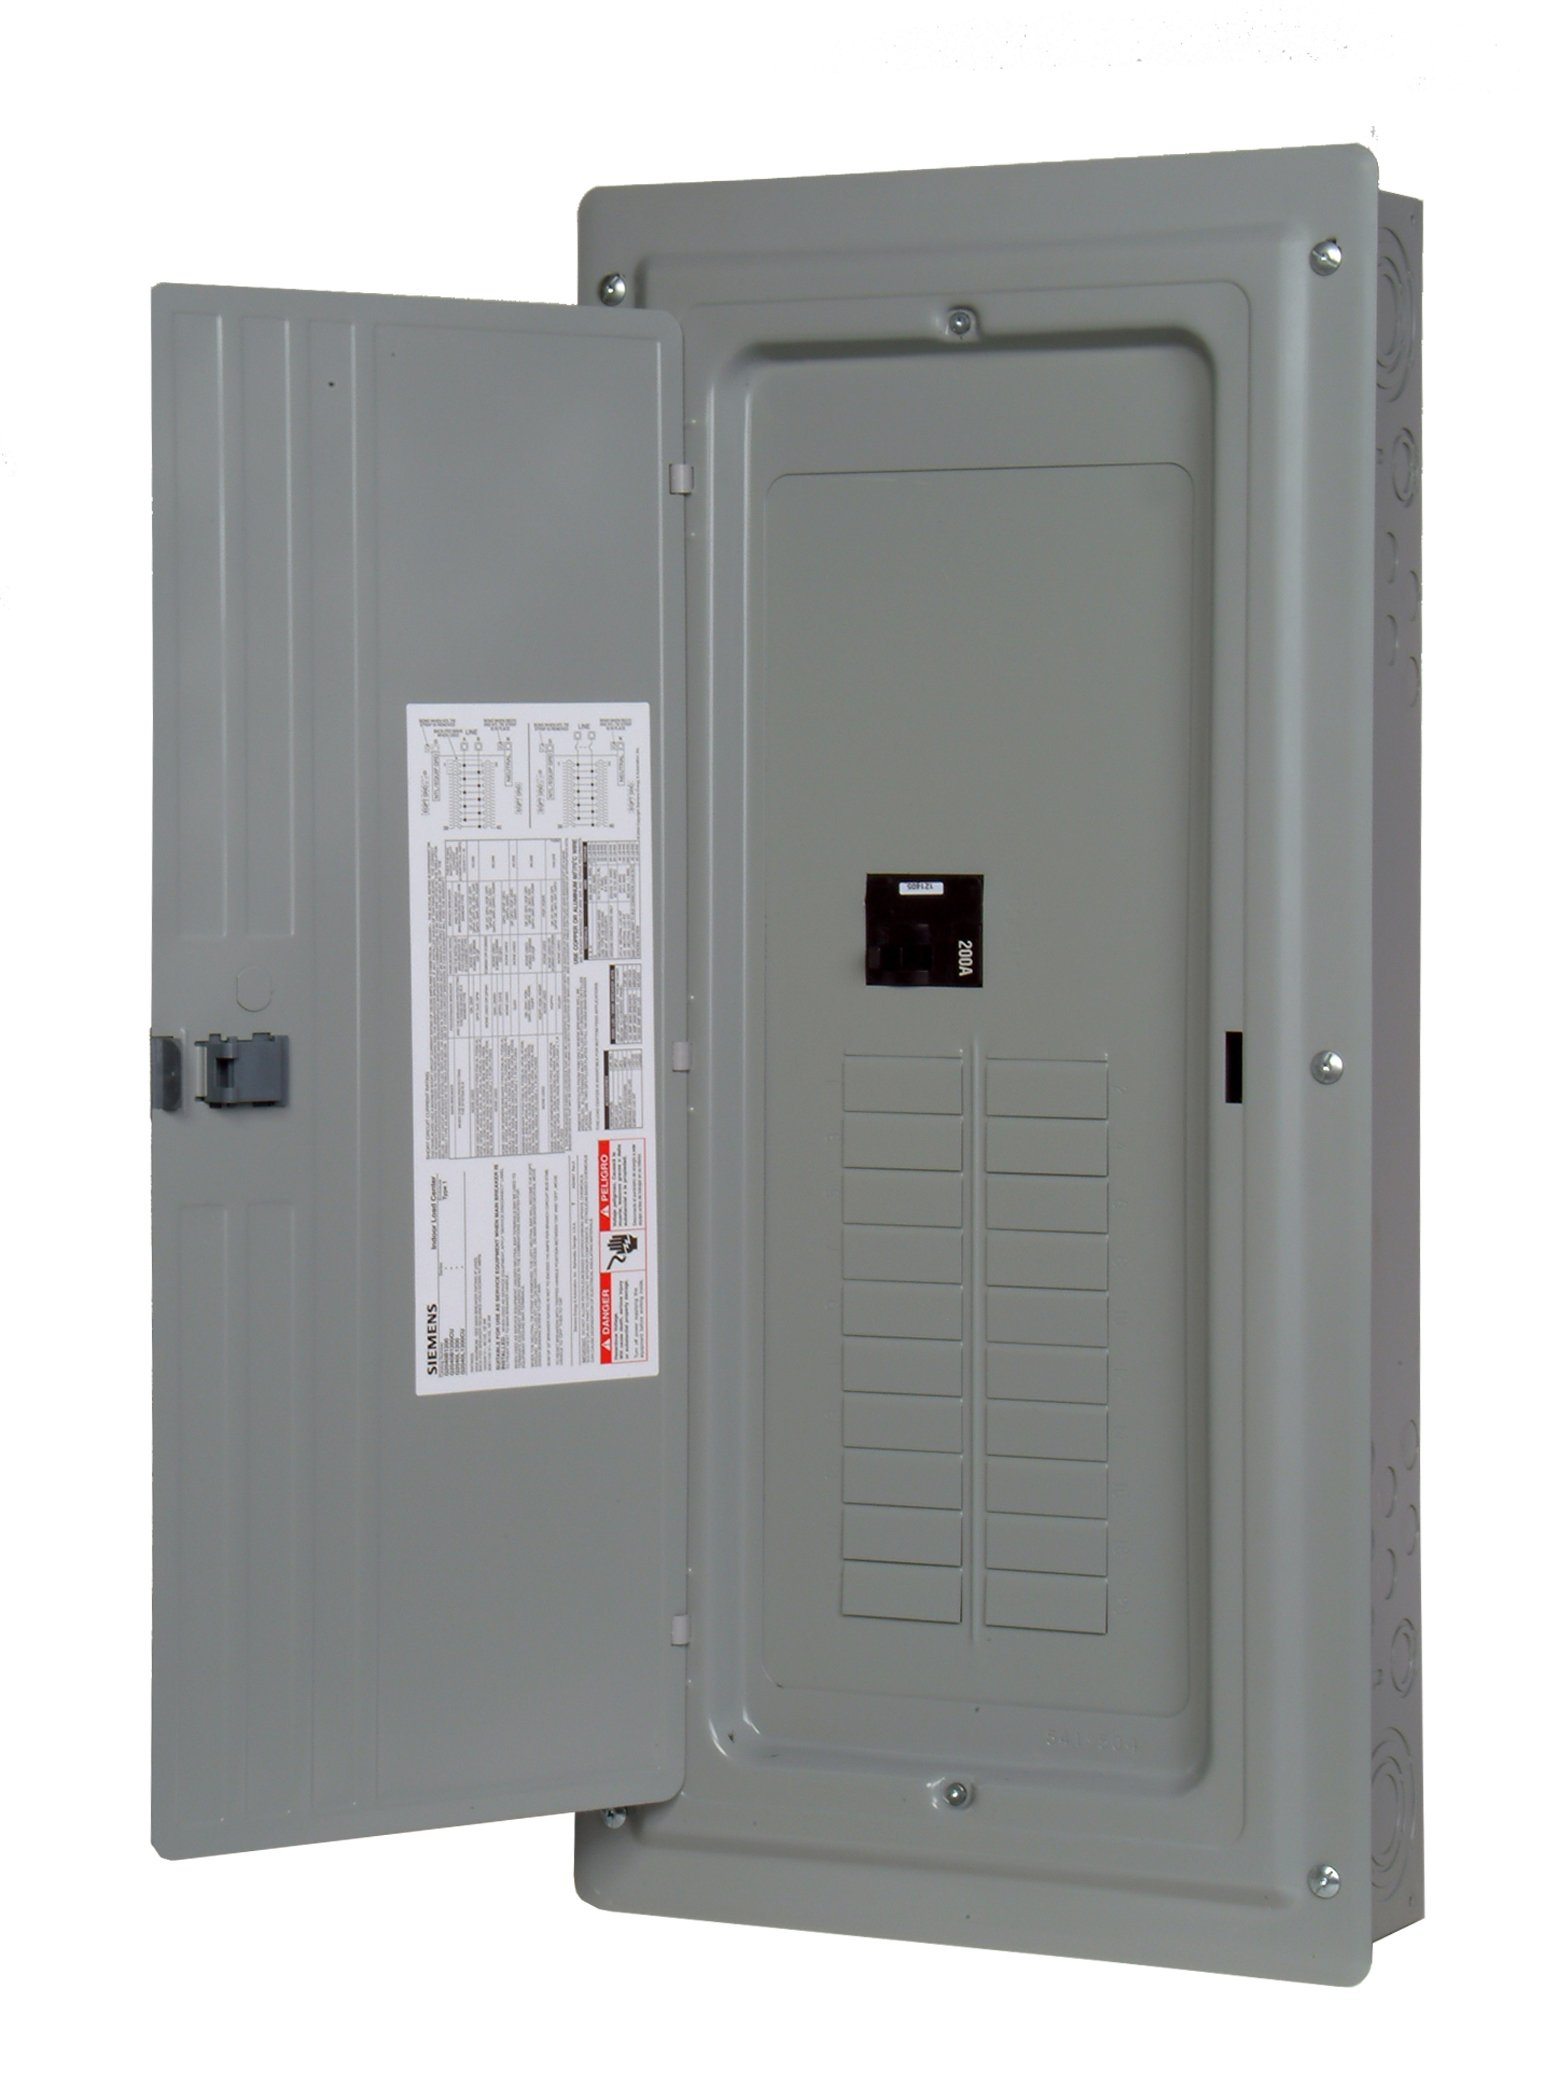 Murray LC2040B1200P 20 Space 20 Circuit 200 Amp Main Breaker Indoor Load Center Value Pack